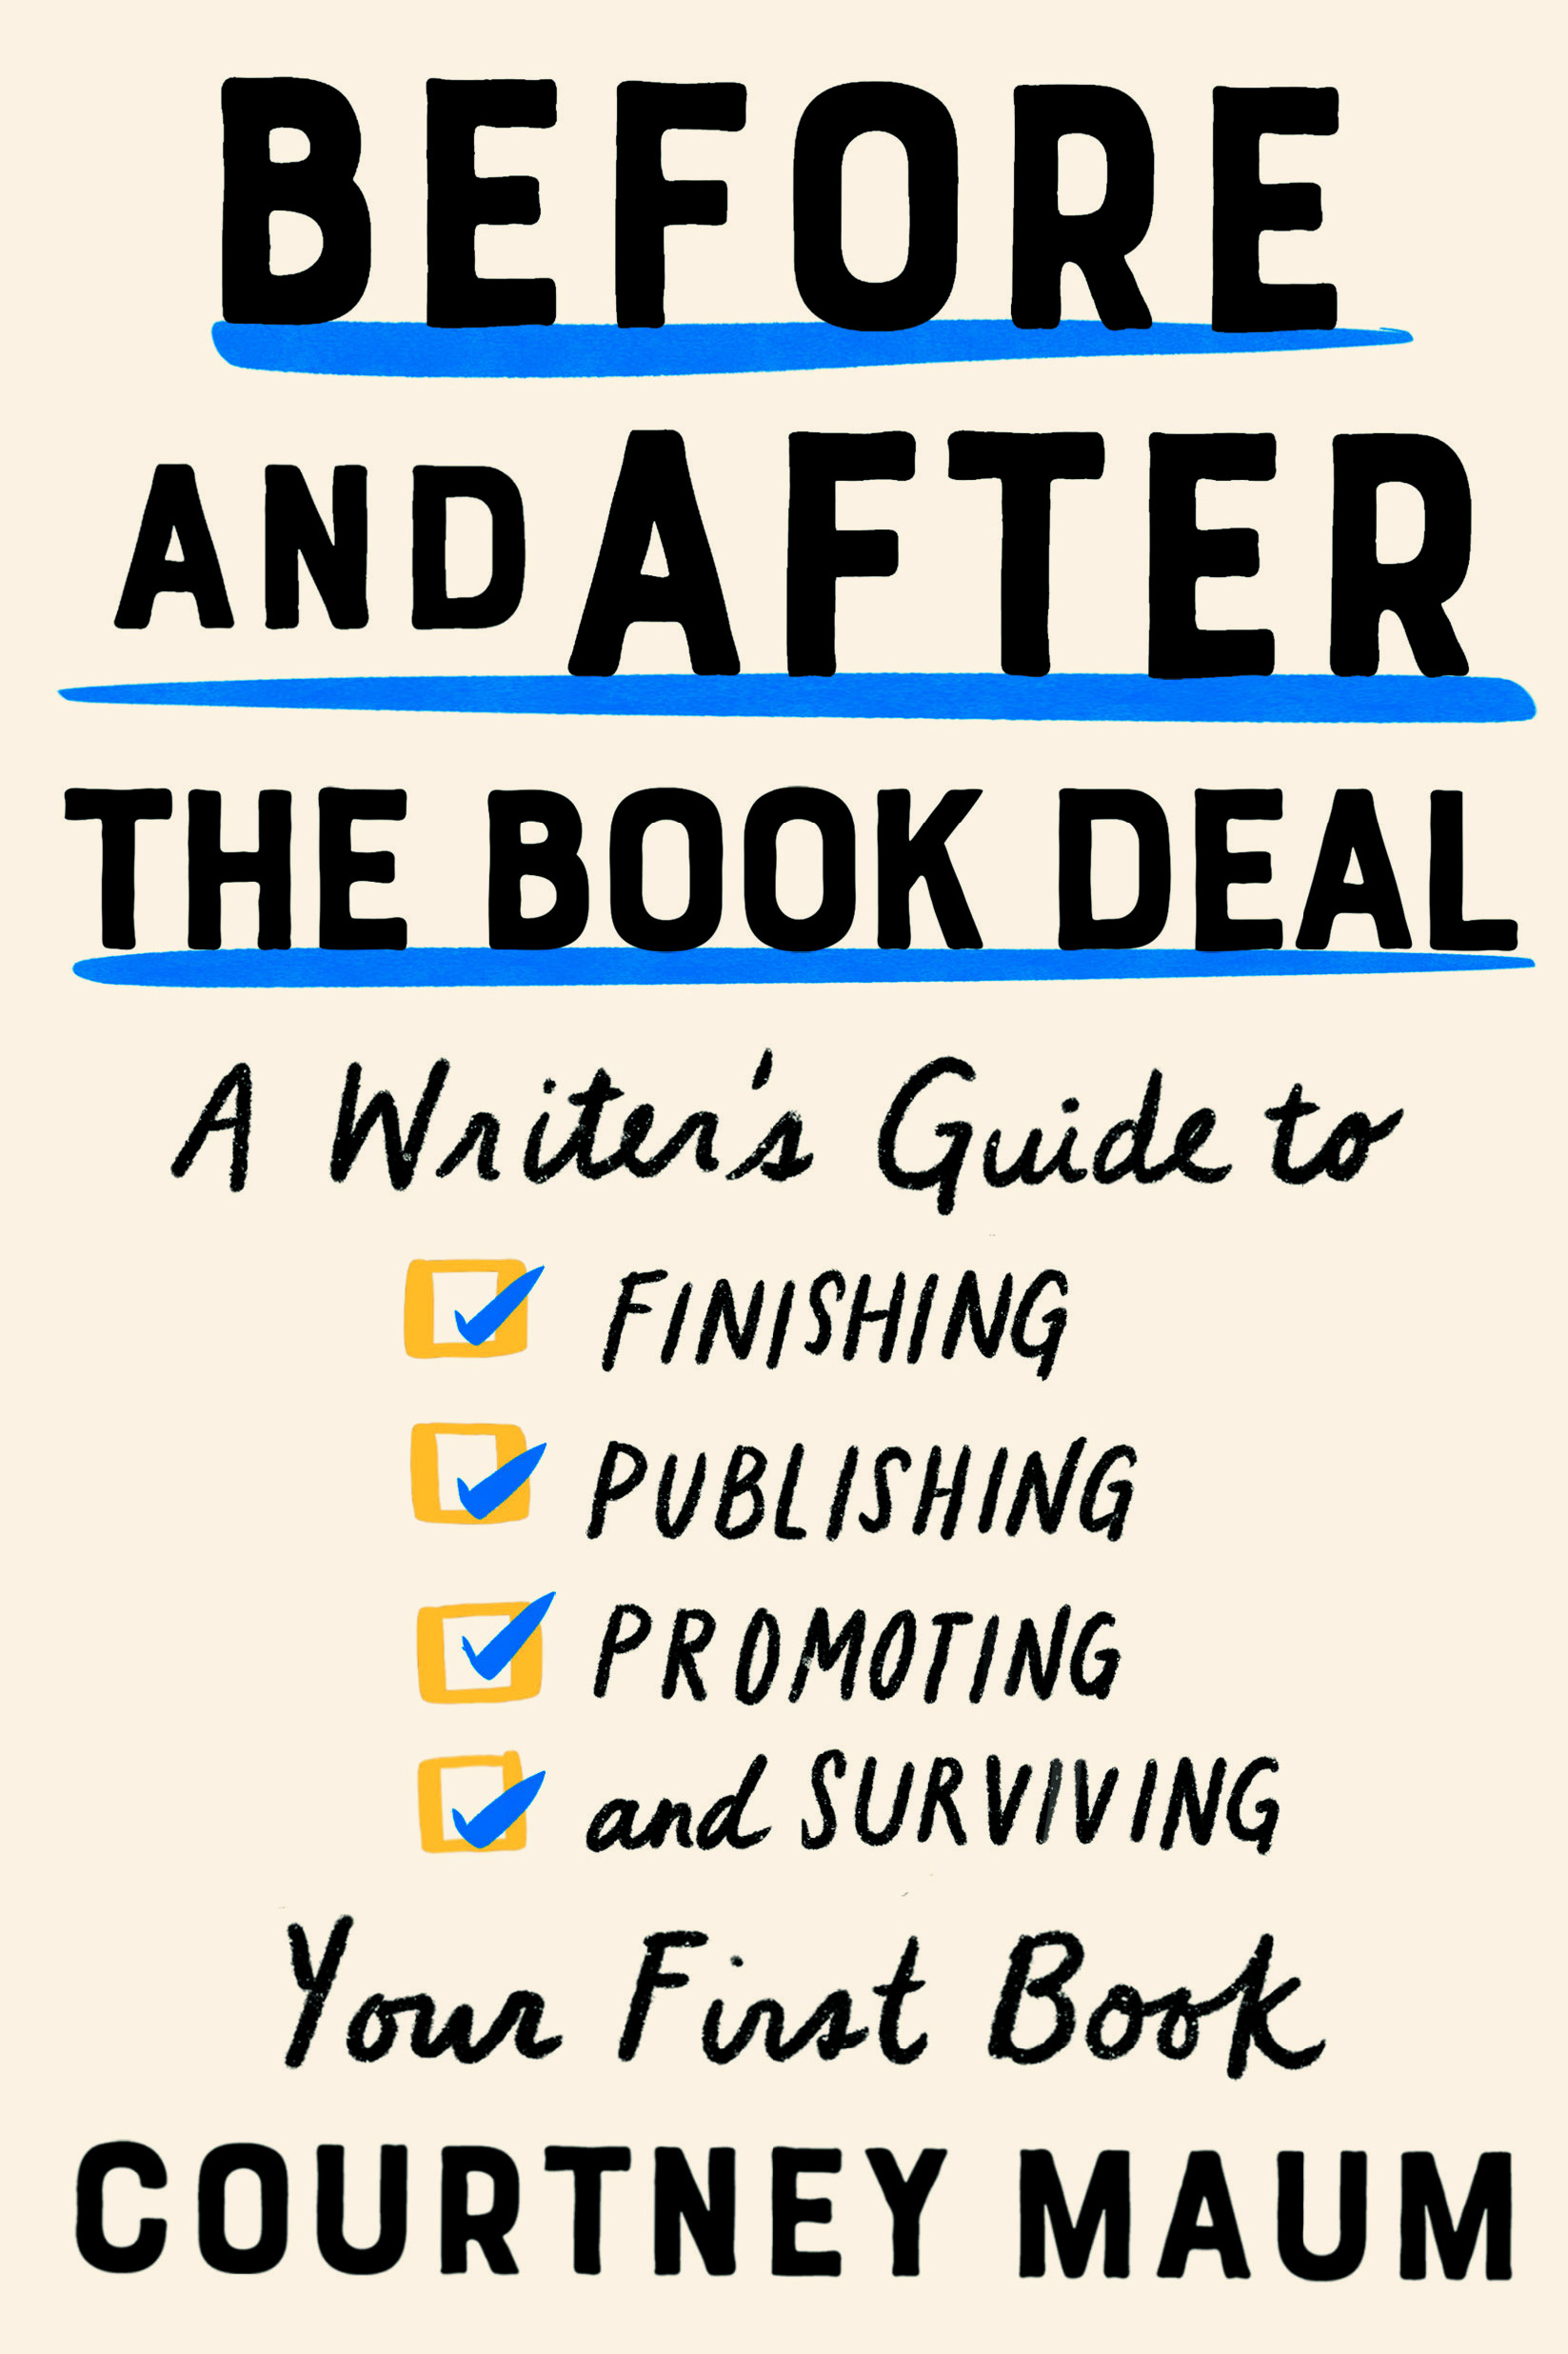 Book Launch: Before and After the Book Deal by Courtney Maum with Catapult, One Story, Fletcher & Co, and co-panelists: Monica Odom, Jenn Baker and more!